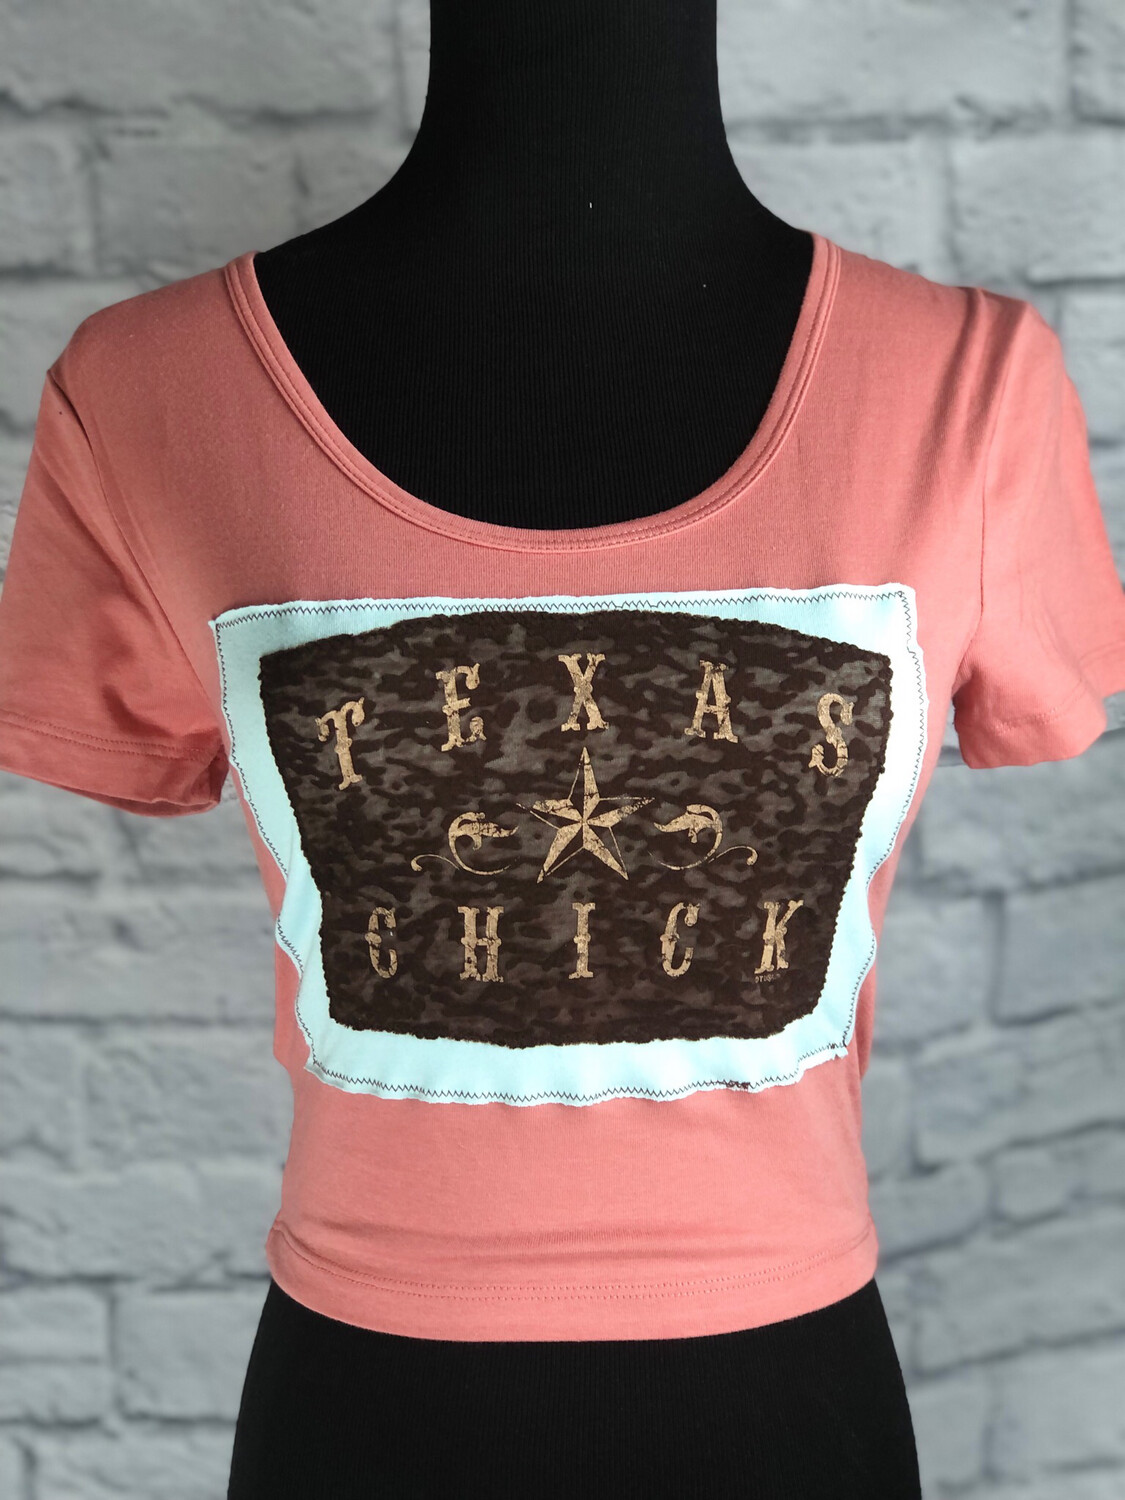 S Threads Upcycled Crop Top Texas Chick Size XS/S/M